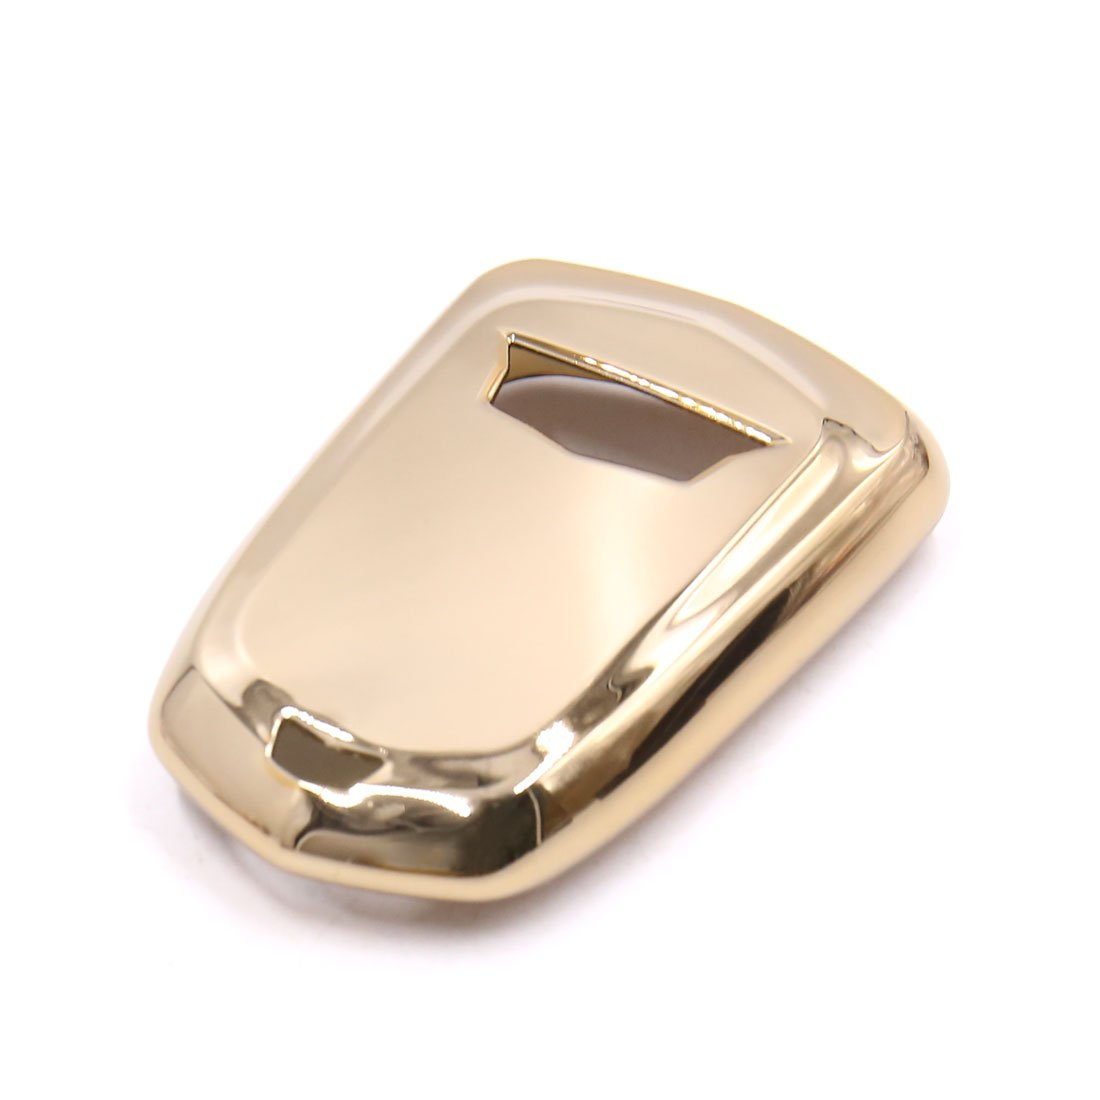 uxcell Gold Tone Plastic Remote Key Case Holder Shell Protect Cover Fit For Cadillac